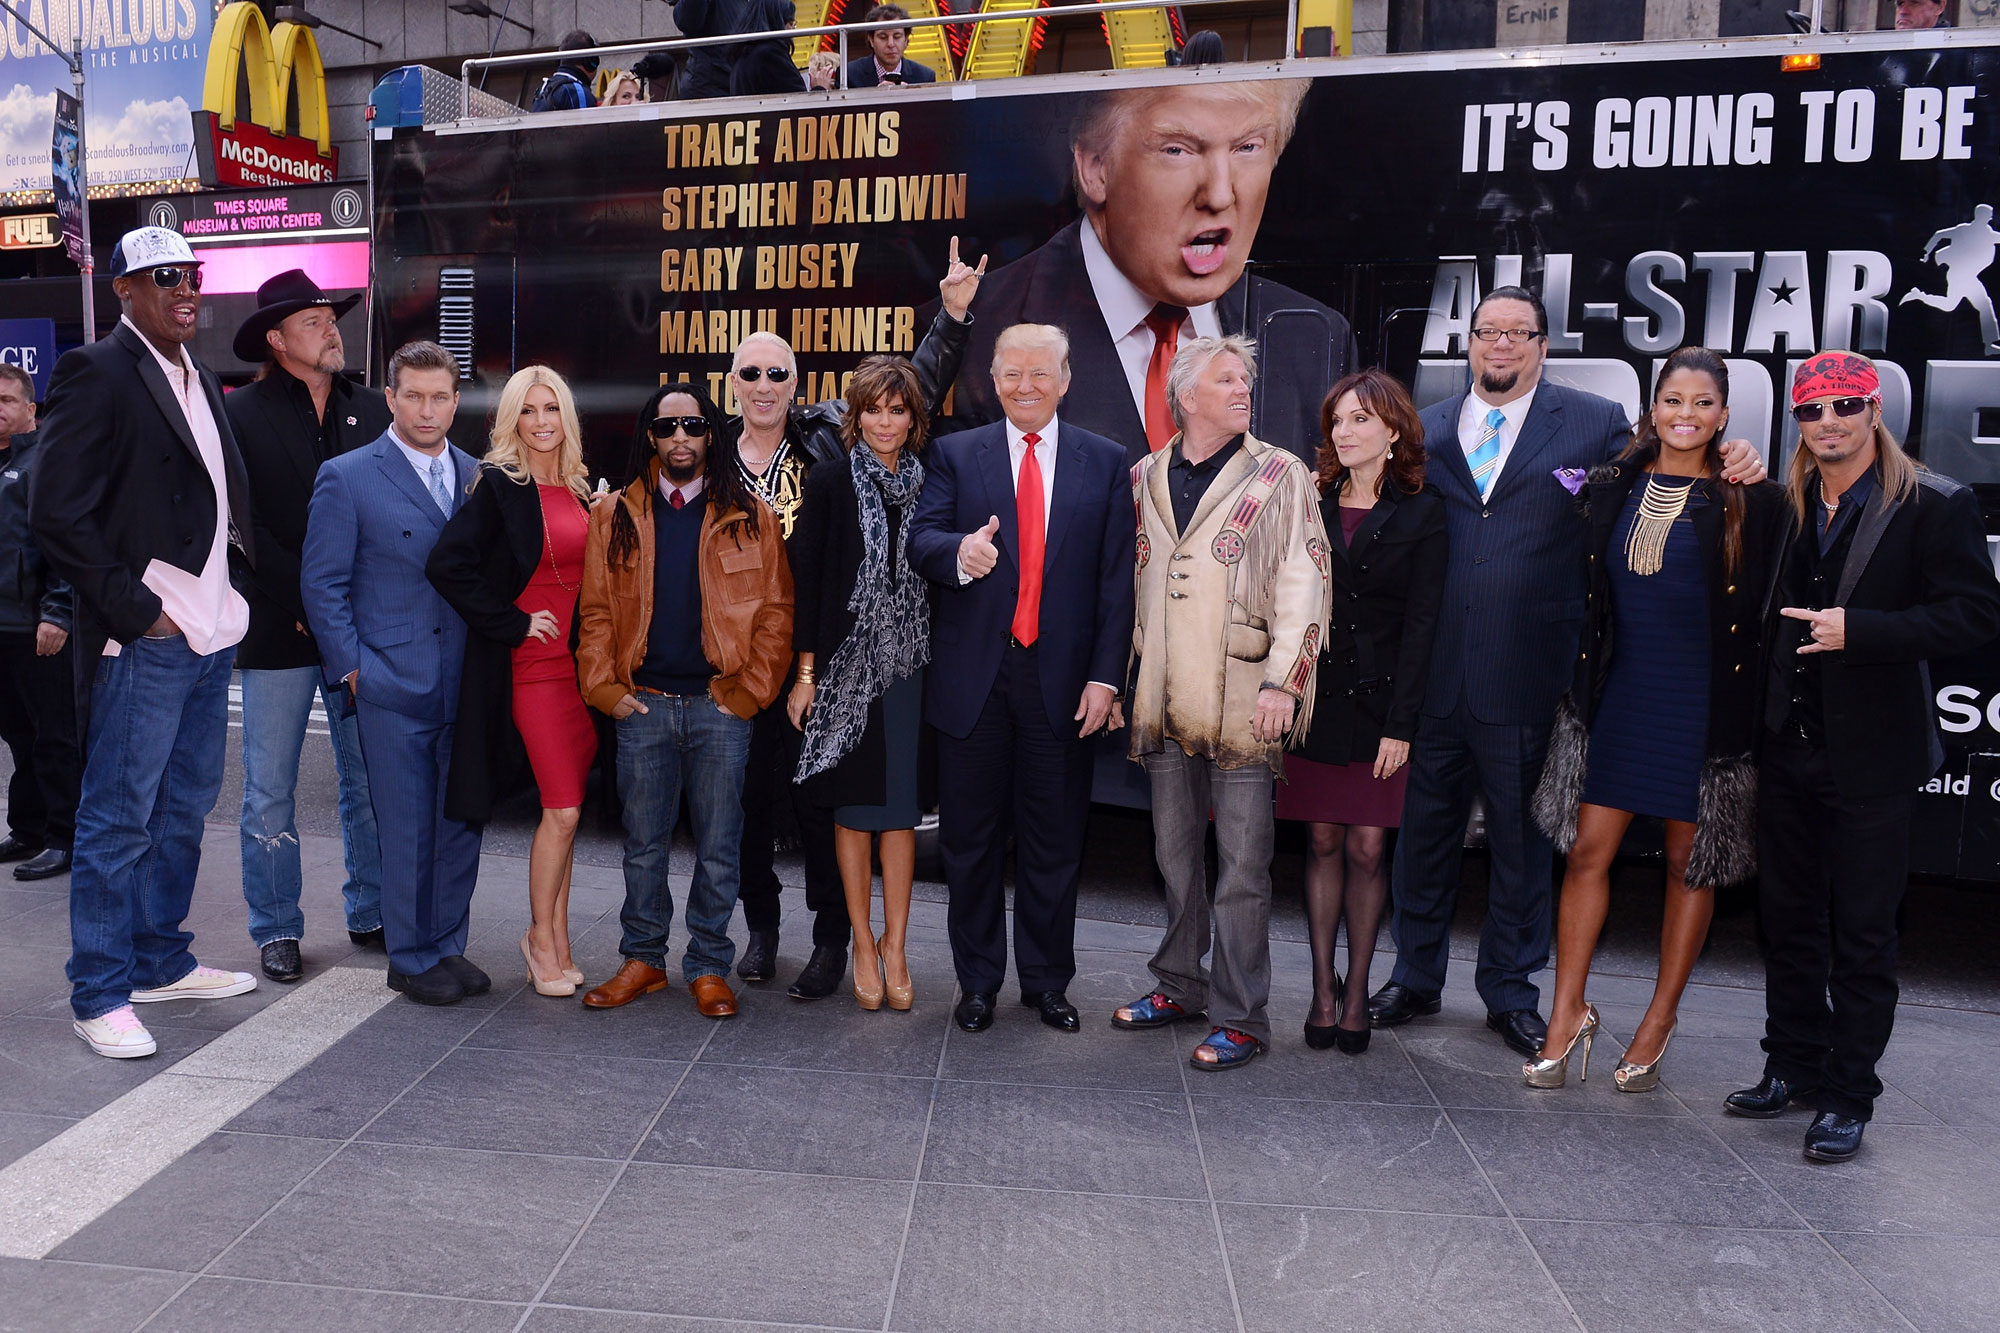 "NEW YORK, NY - OCTOBER 12: (L-R) Castmembers Dennis Rodman, Trace Adkins, Stephen Baldwin, Brande Roderick, Lil Jon, Dee Snider, Lisa Rinna, Donald Trump, Gary Busey, Marilu Henner, Penn Jillette, Claudia Jordan, and Brett Michaels attend the ""Celebrity Apprentice All Stars"" Season 13 Bus Tour at on October 12, 2012 in New York City. (Photo by Stephen Lovekin/Getty Images)"